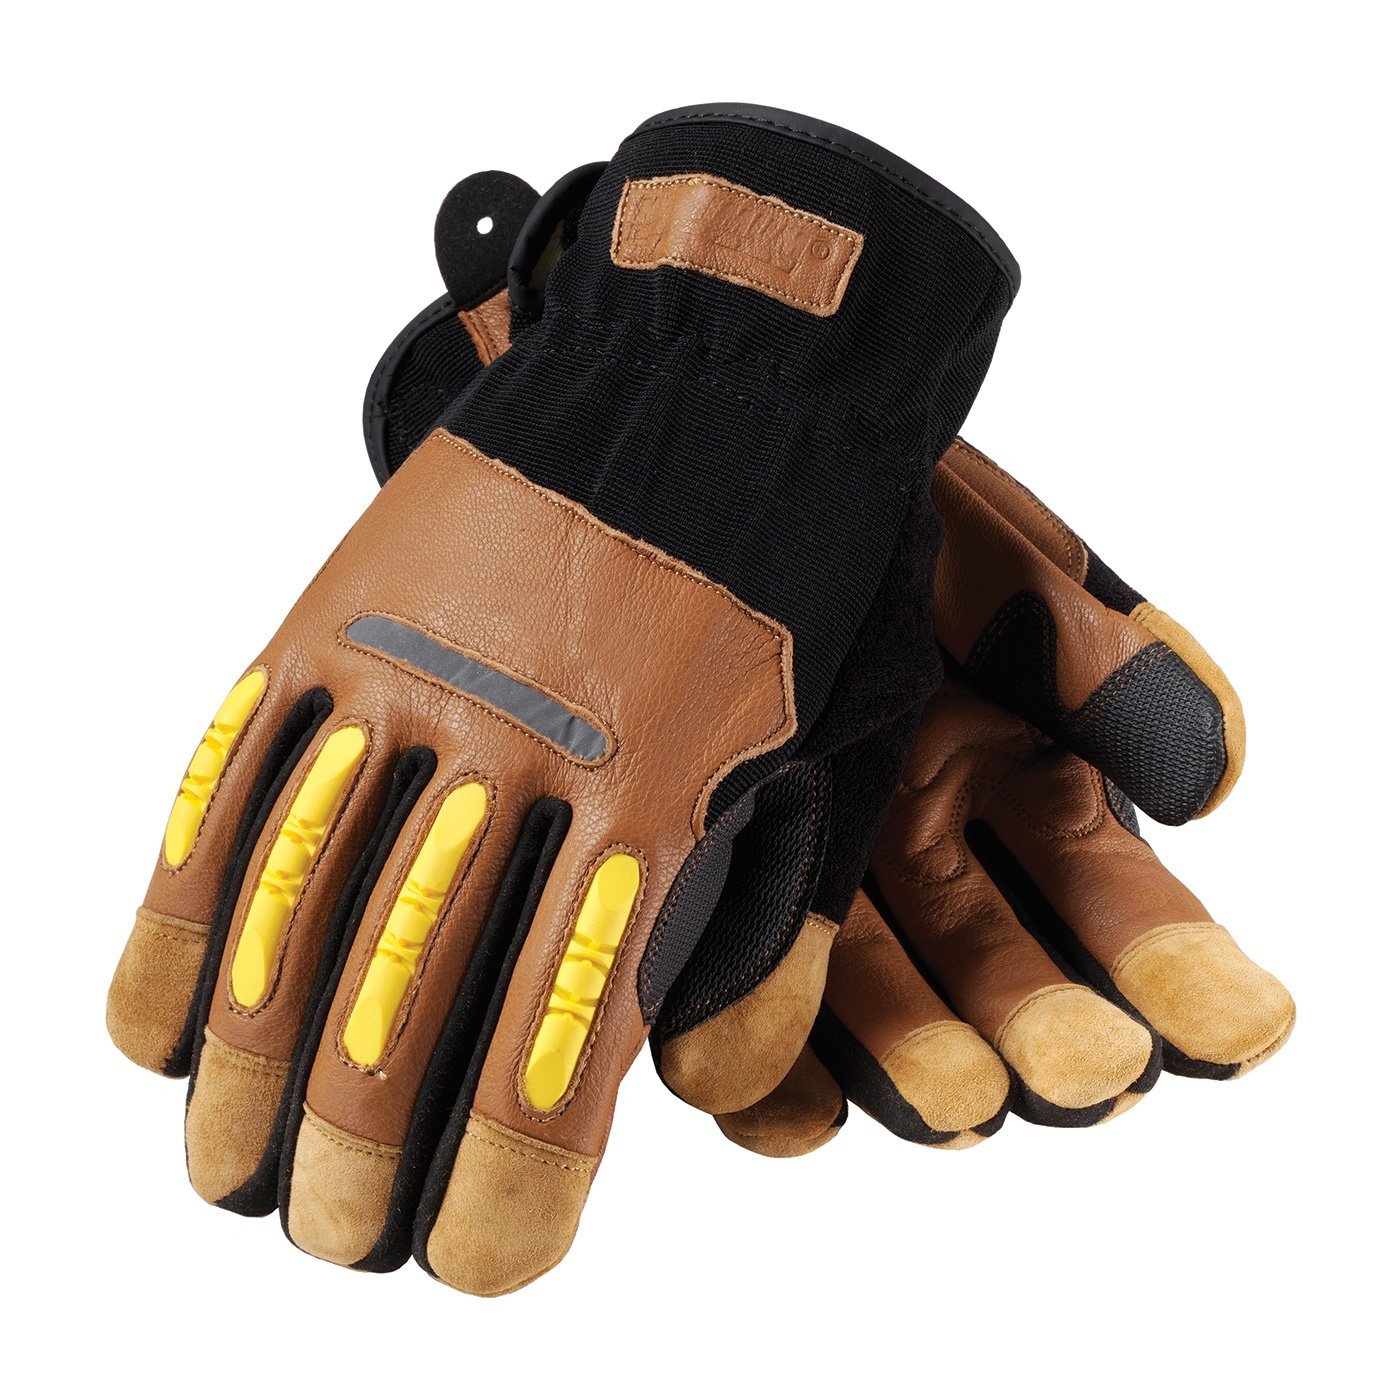 Maximum Safety 120-4100/S Journeyman KV Professional Workman Gloves with Kevlar Lining and  Reinforced Leather Palm, Brown/Black/Yellow, Small